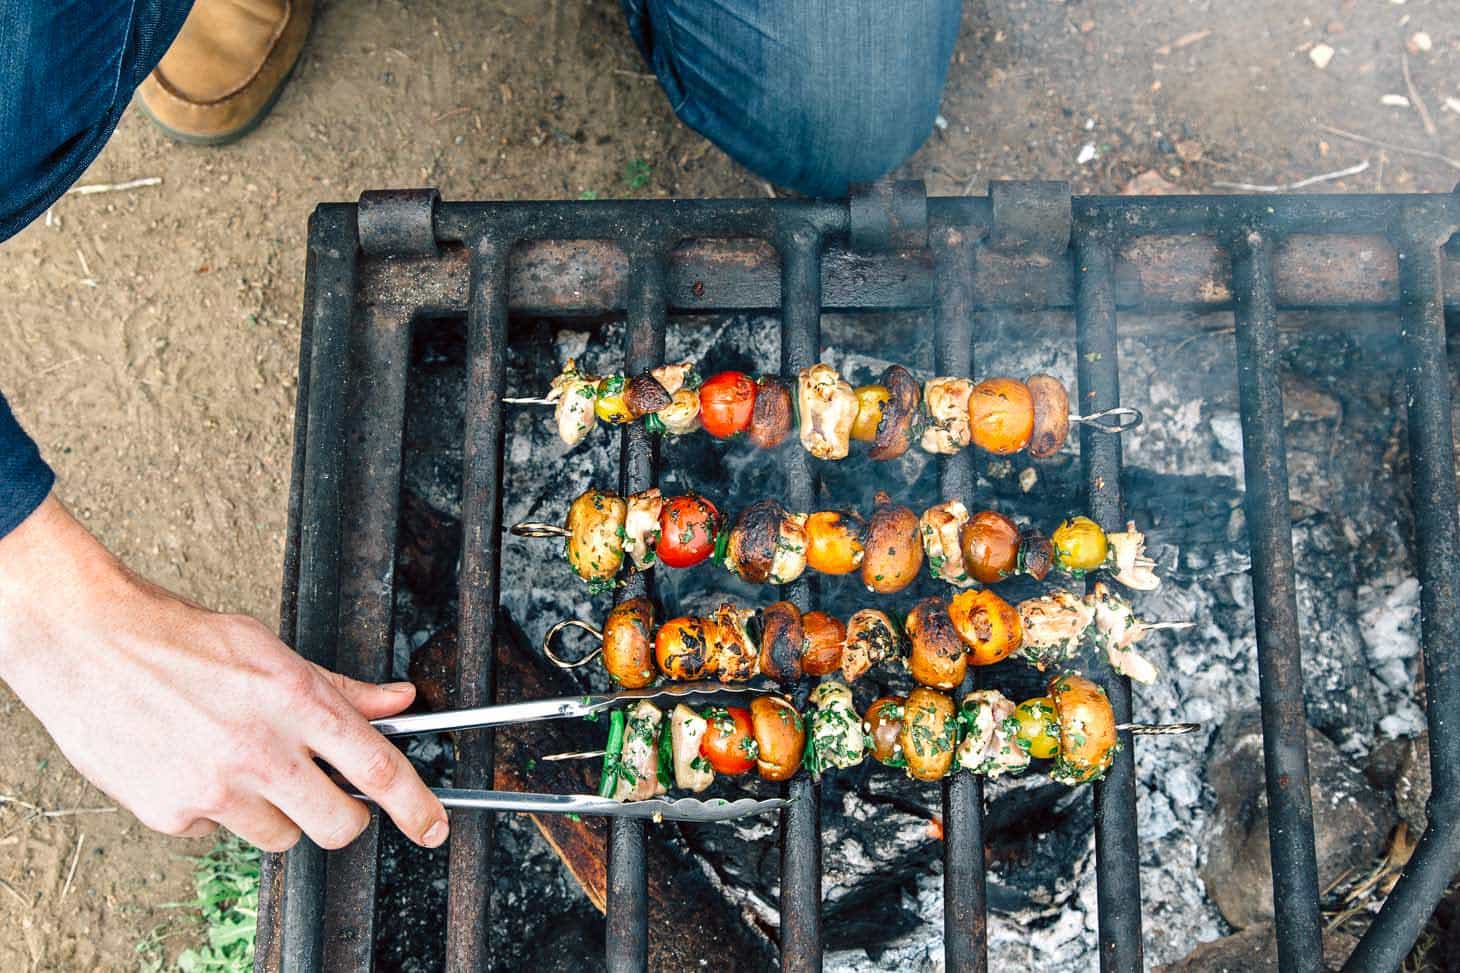 15 camping skewer recipes to make over your campfire fresh off the